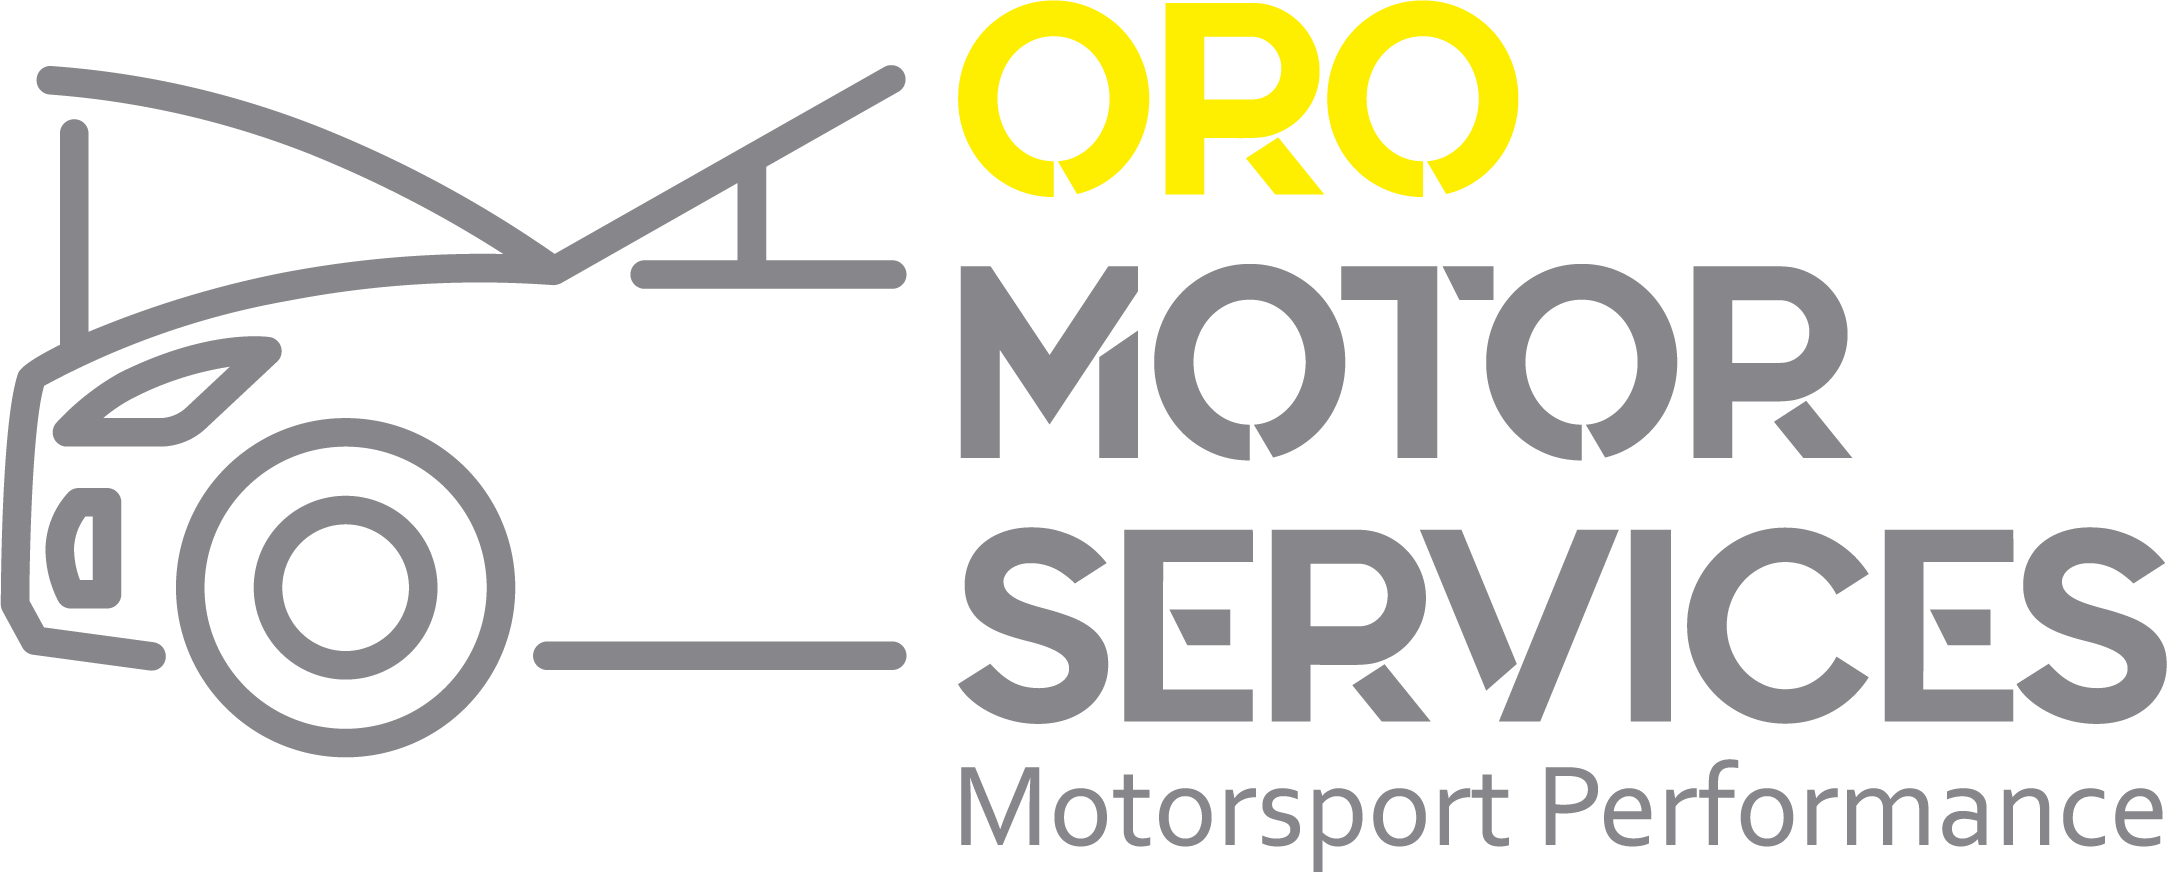 ORO MOTOR SERVICES